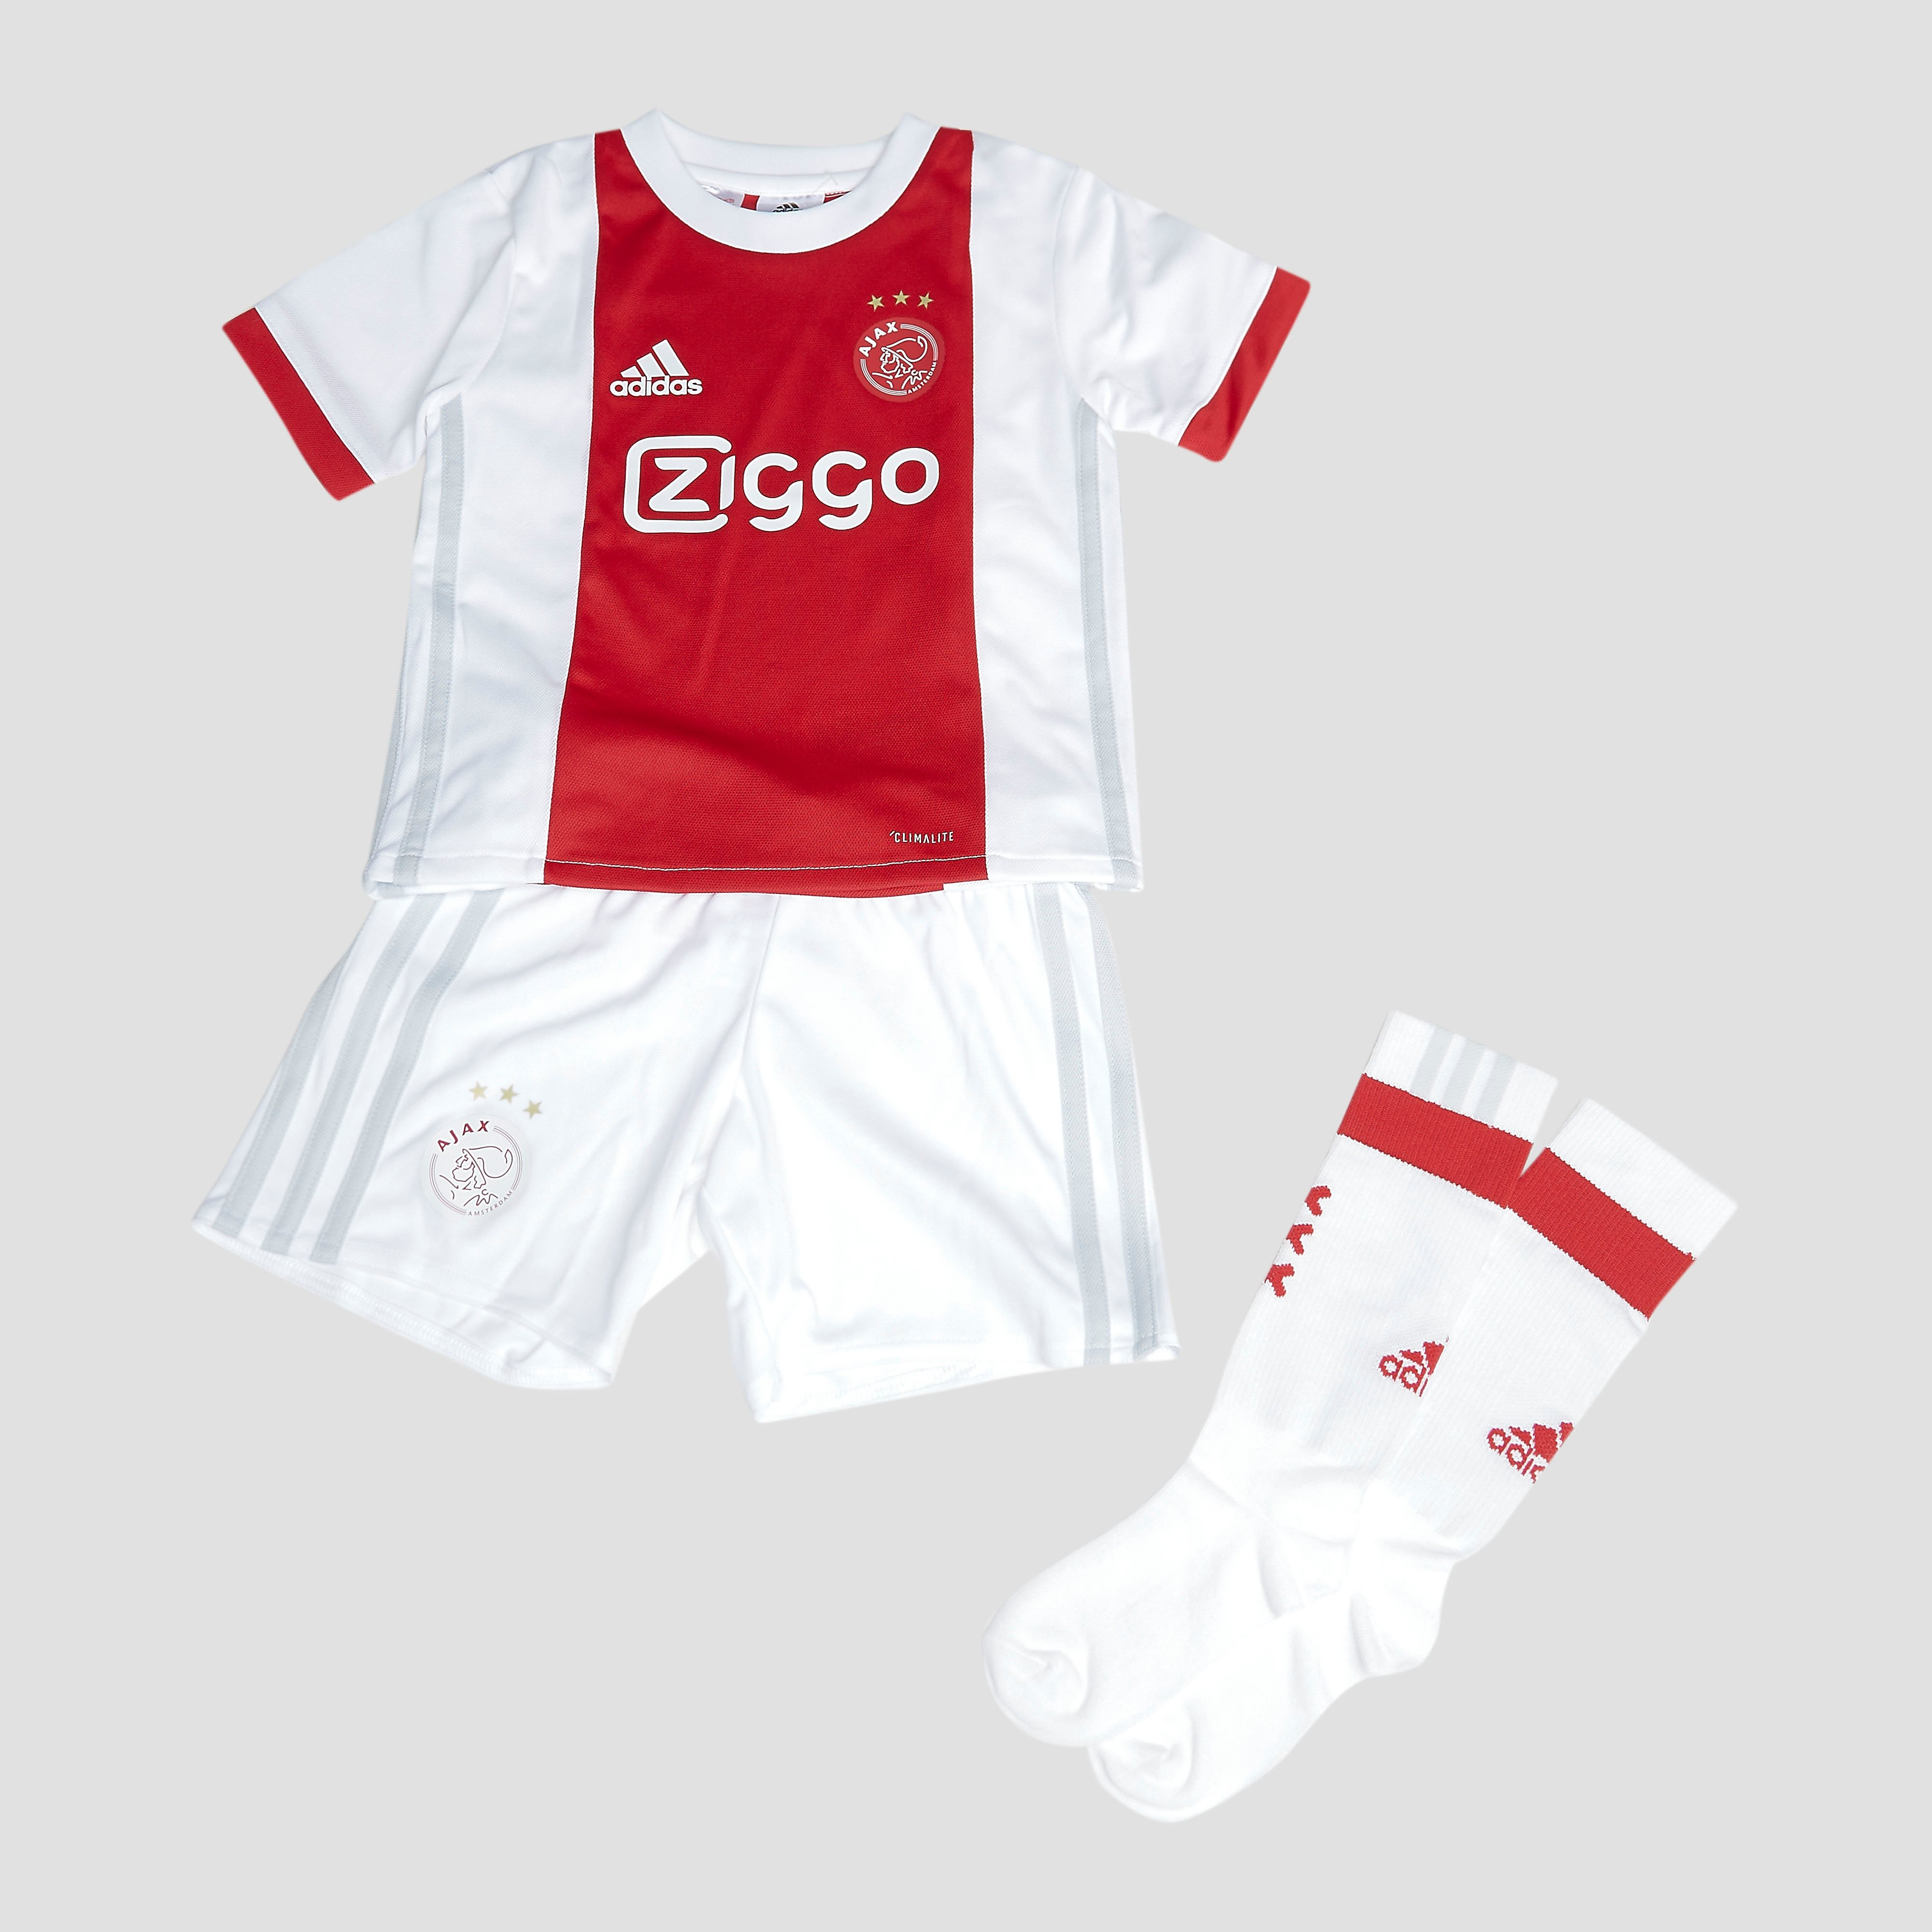 ADIDAS AJAX THUISTENUE 17/18 WIT/ROOD BABY